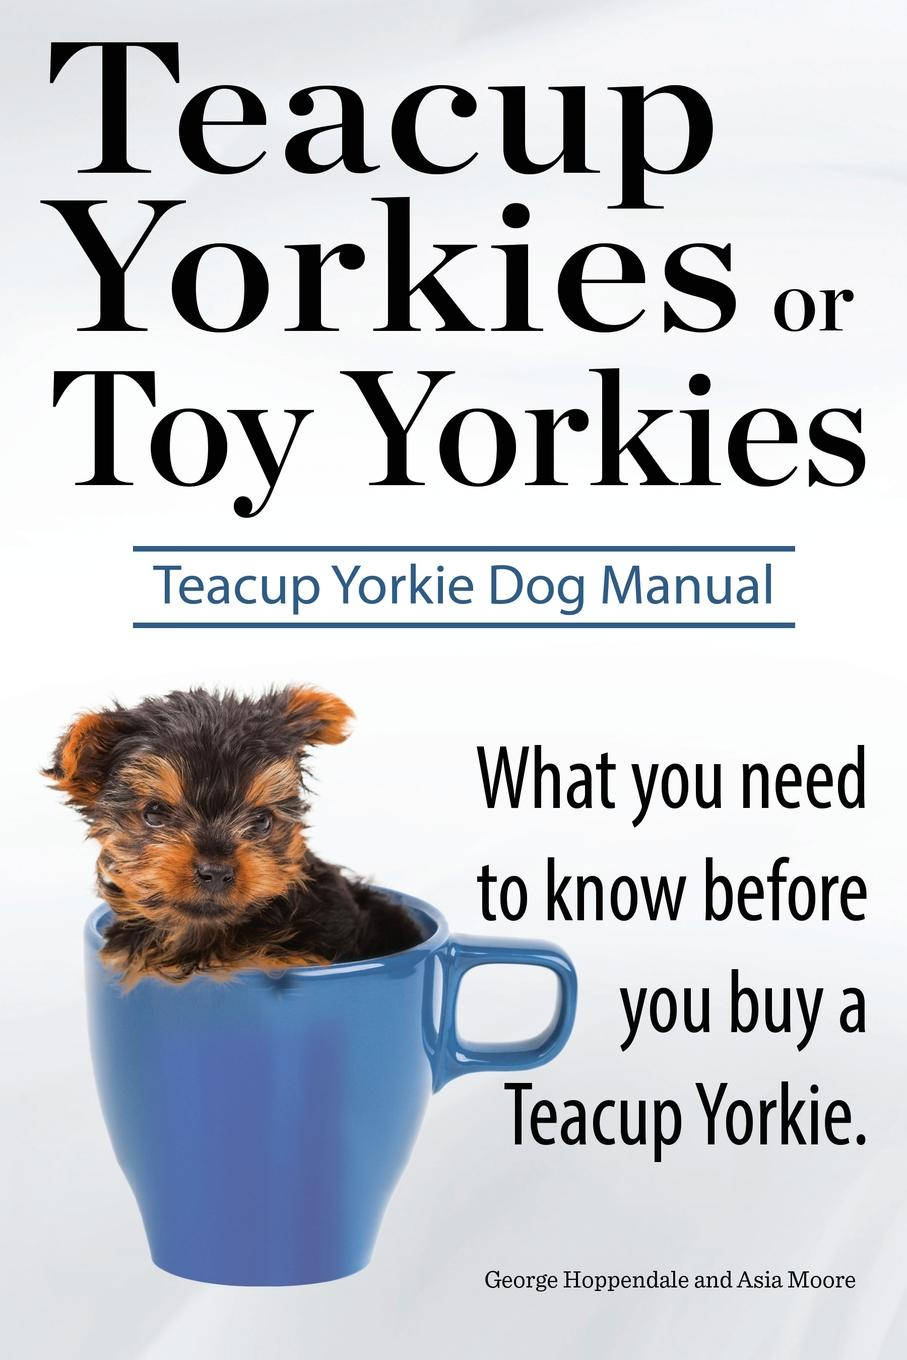 цена George Hoppendale, Asia Moore Teacup Yorkies or Toy Yorkies. Ultimate Teacup Yorkie Dog Manual. What You Need to Know Before You Buy a Teacup Yorkie or Toy Yorkie.